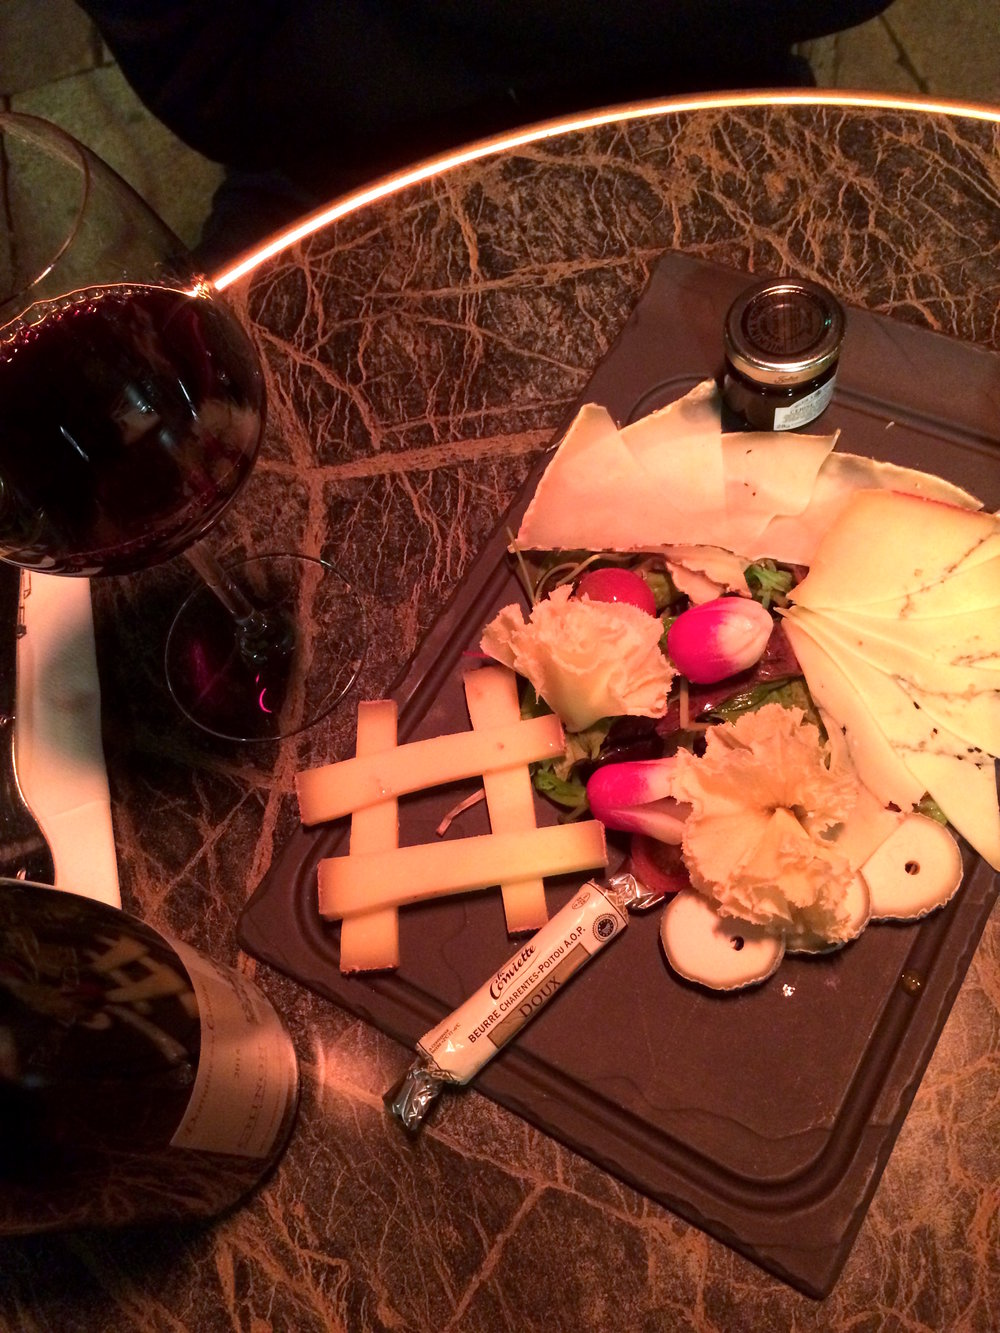 My very first activity after landing in Bordeaux: wine and cheese plate.